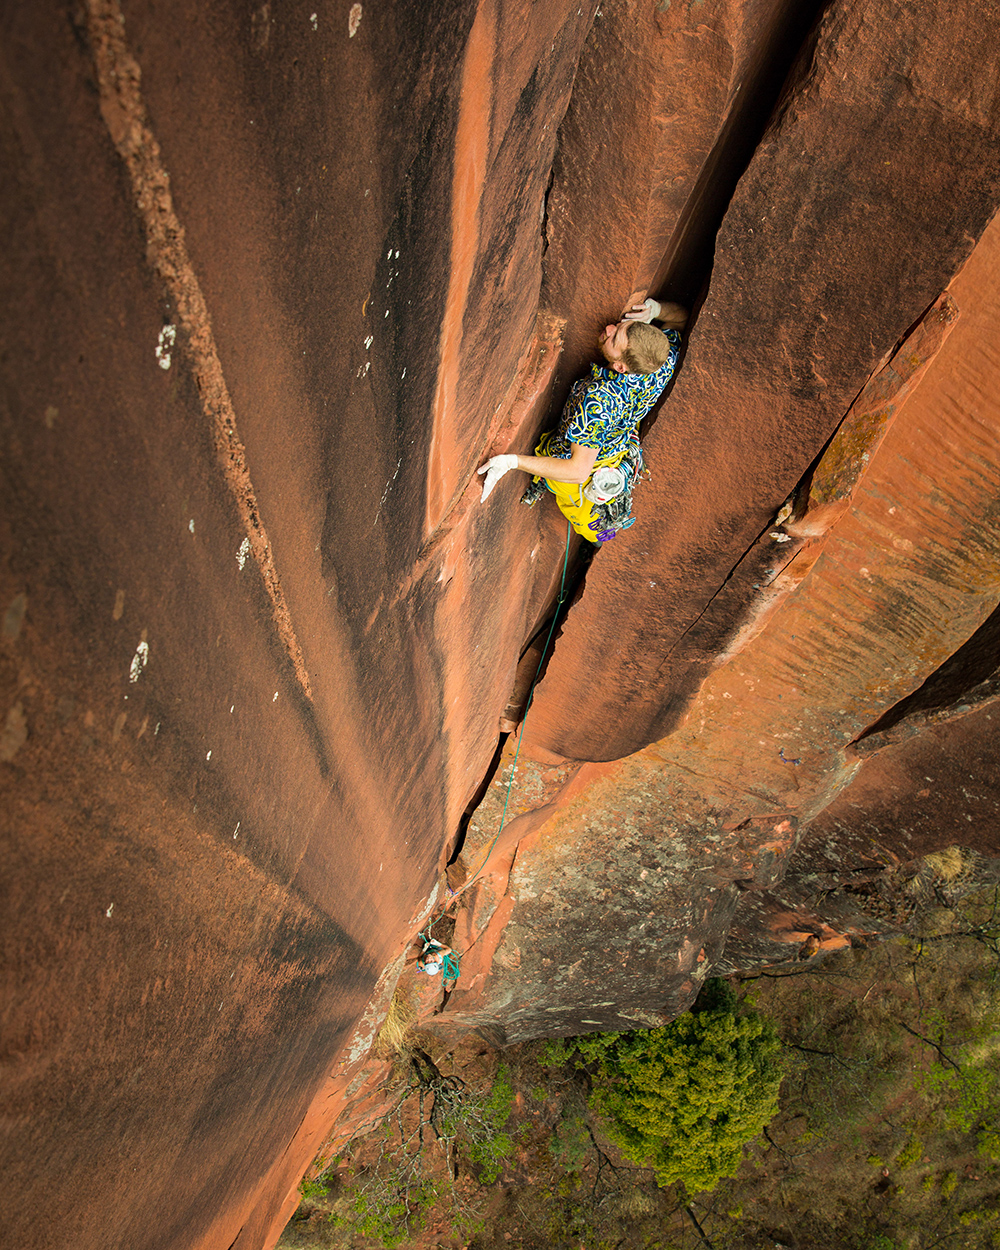 Danny Parker on the classic P2 offwidth of Elephant Riders.  © Irene Yee/Lady Lockoff Photography